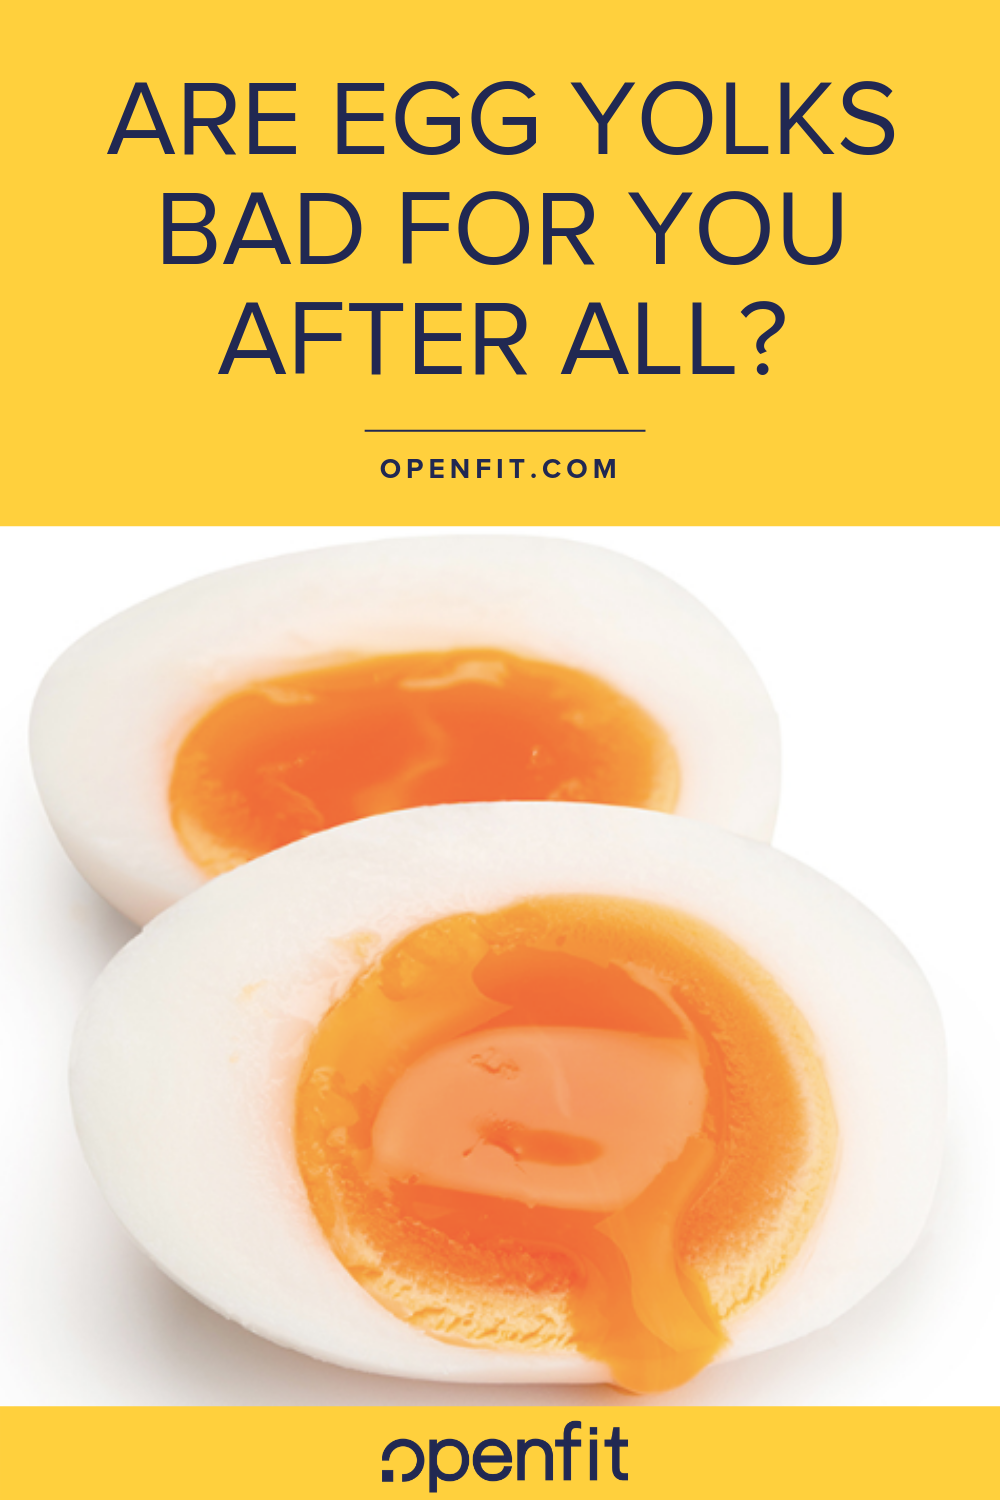 are egg yolks bad for you